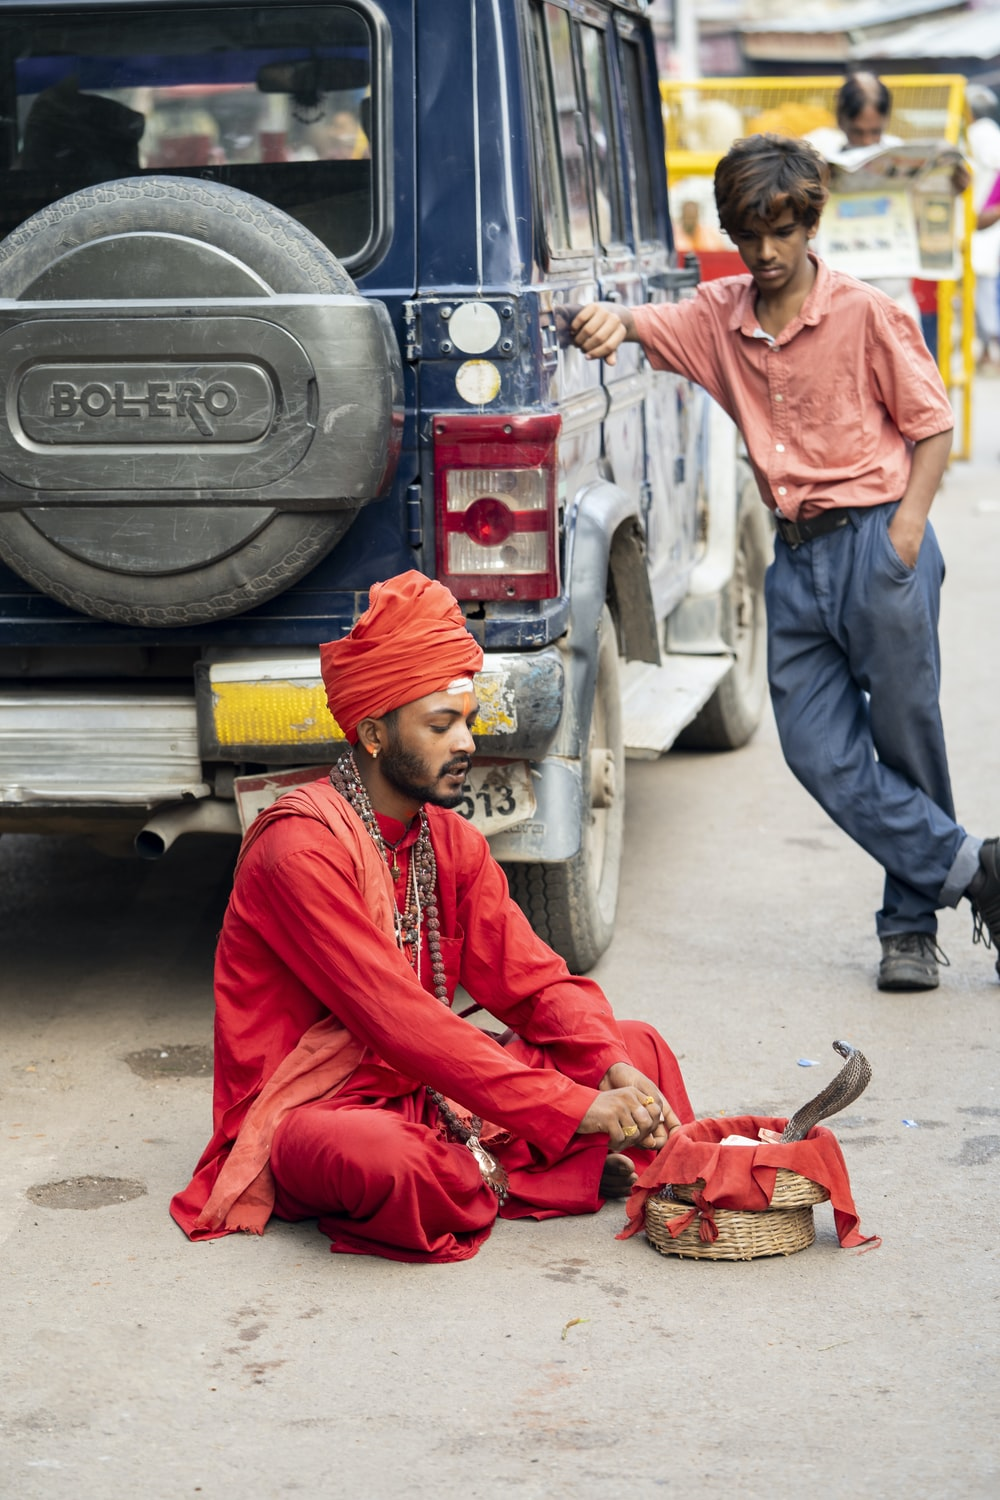 man wearing red thobe robe sitting and playing with snake and another man standing and touching blue vehicle while watching man performing